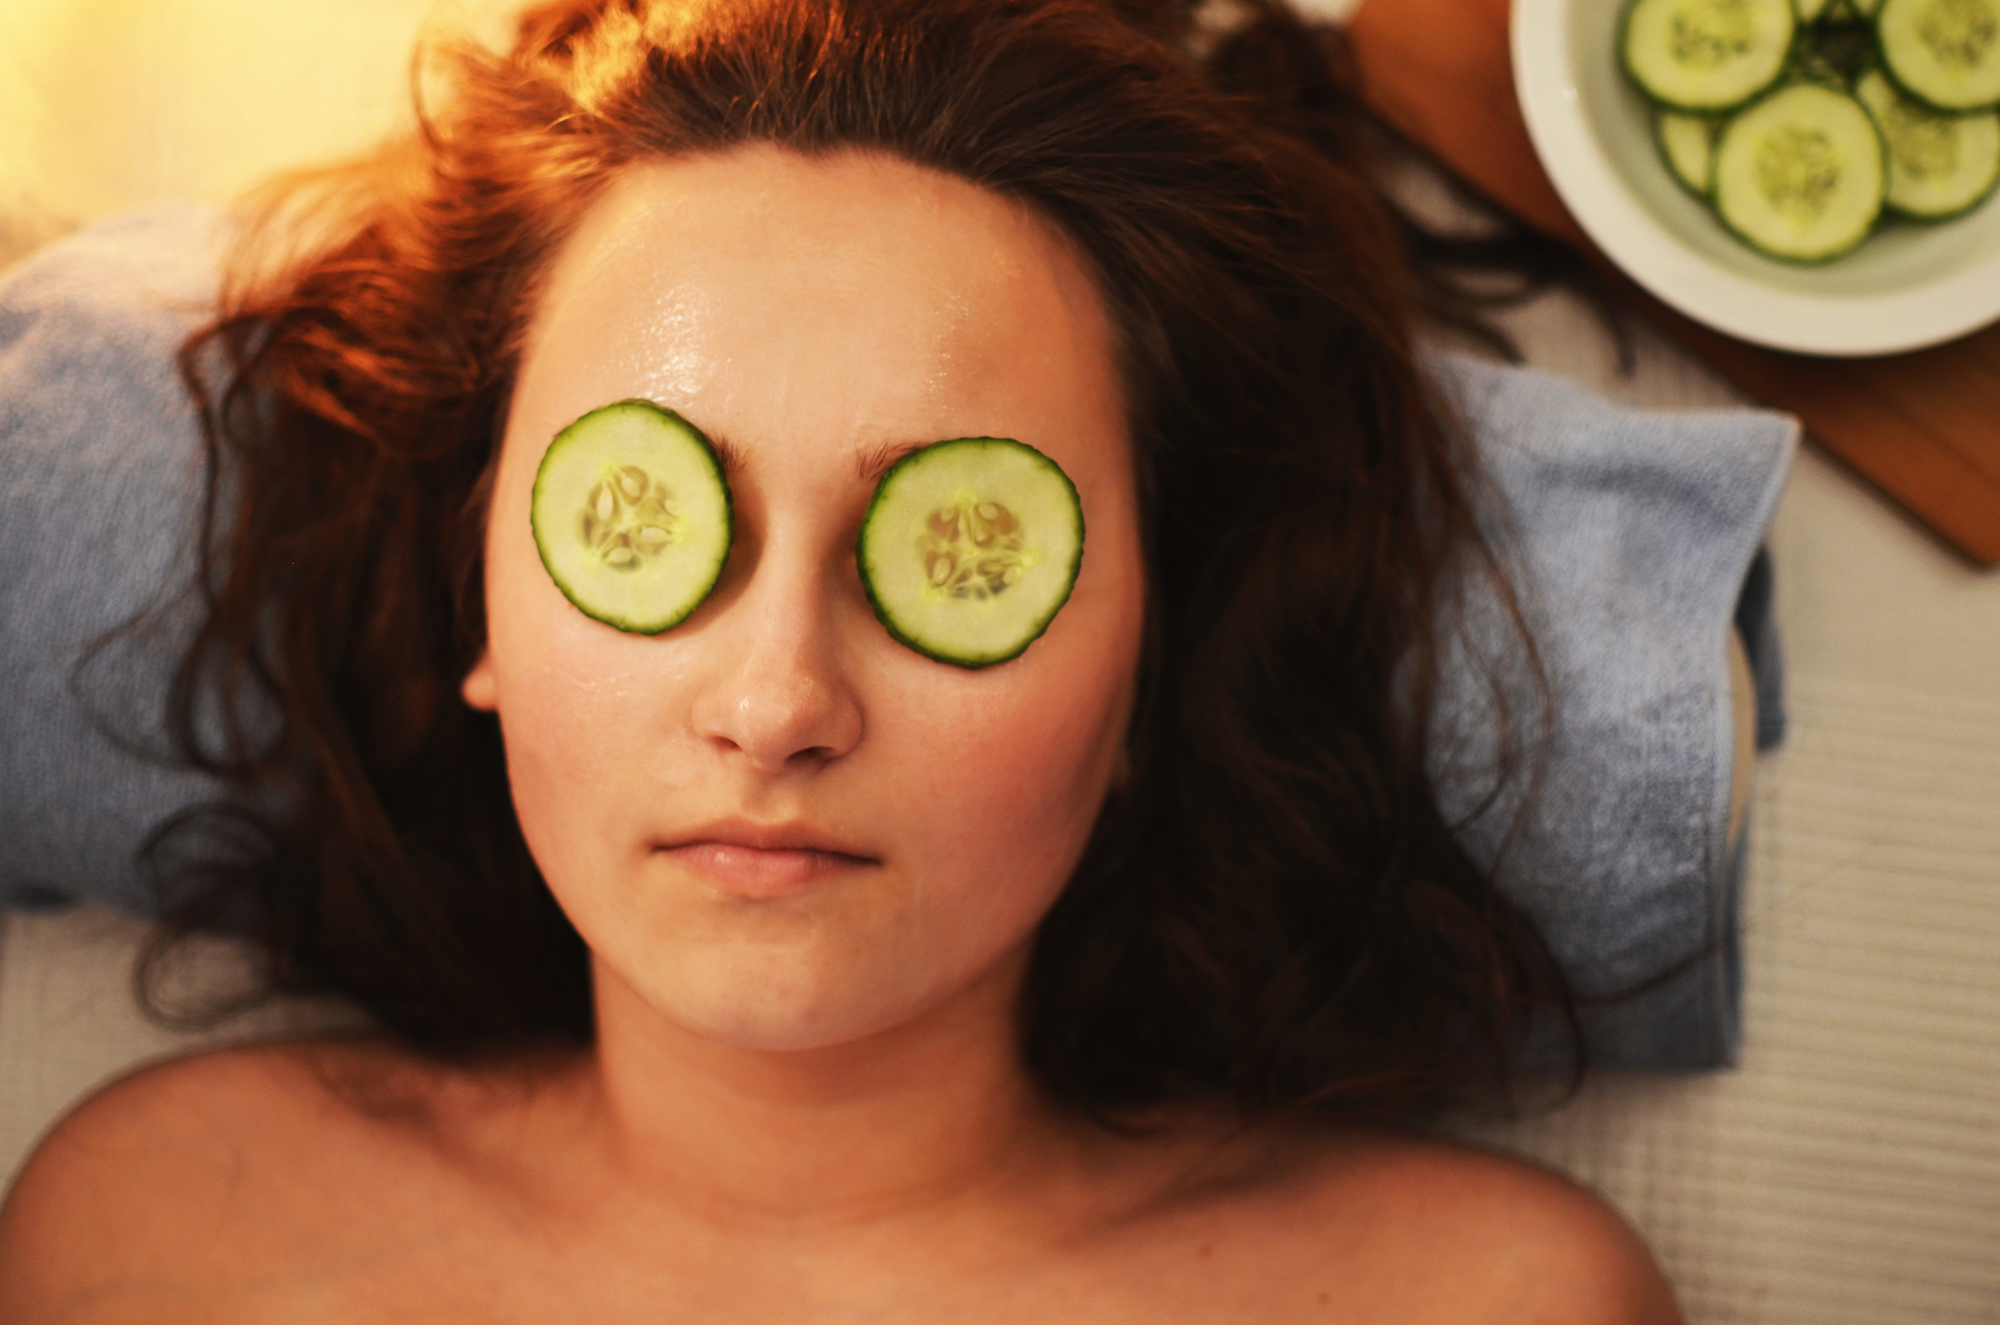 Turn back the clock, how to achieve a youthful appearance on a budget